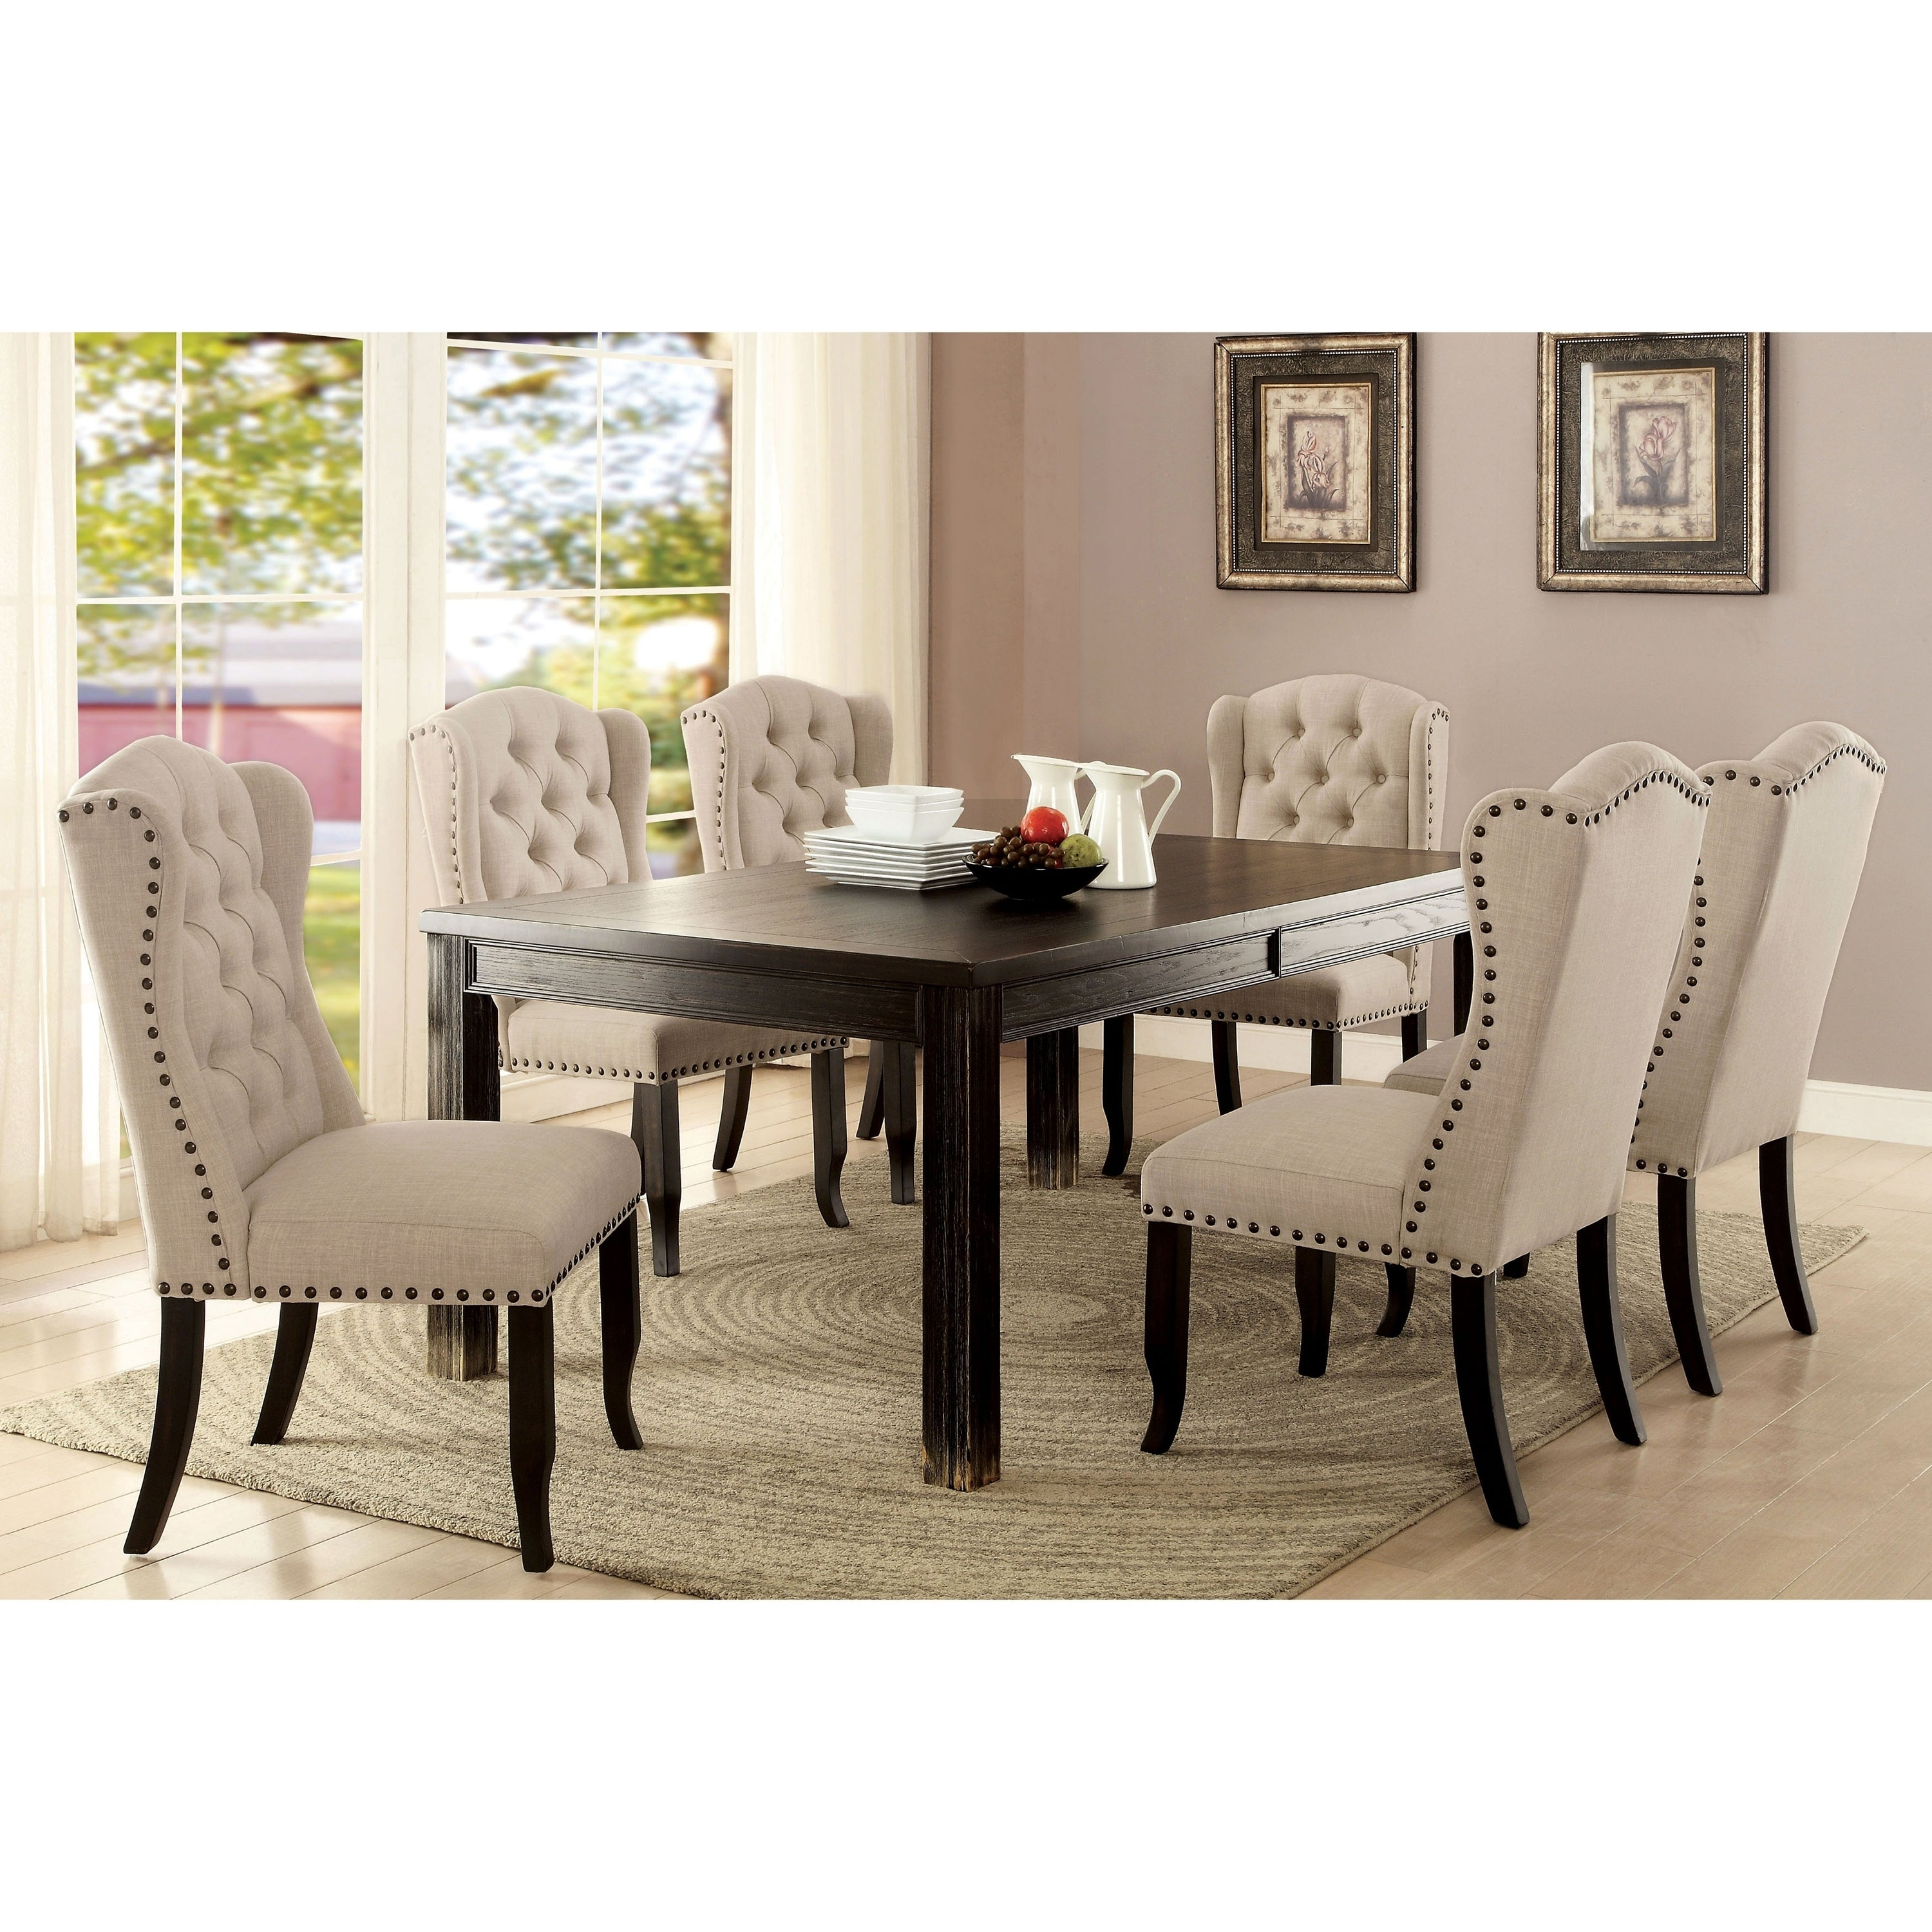 Shop Furniture Of America Foster 7 Piece Dining Table Set On Sale